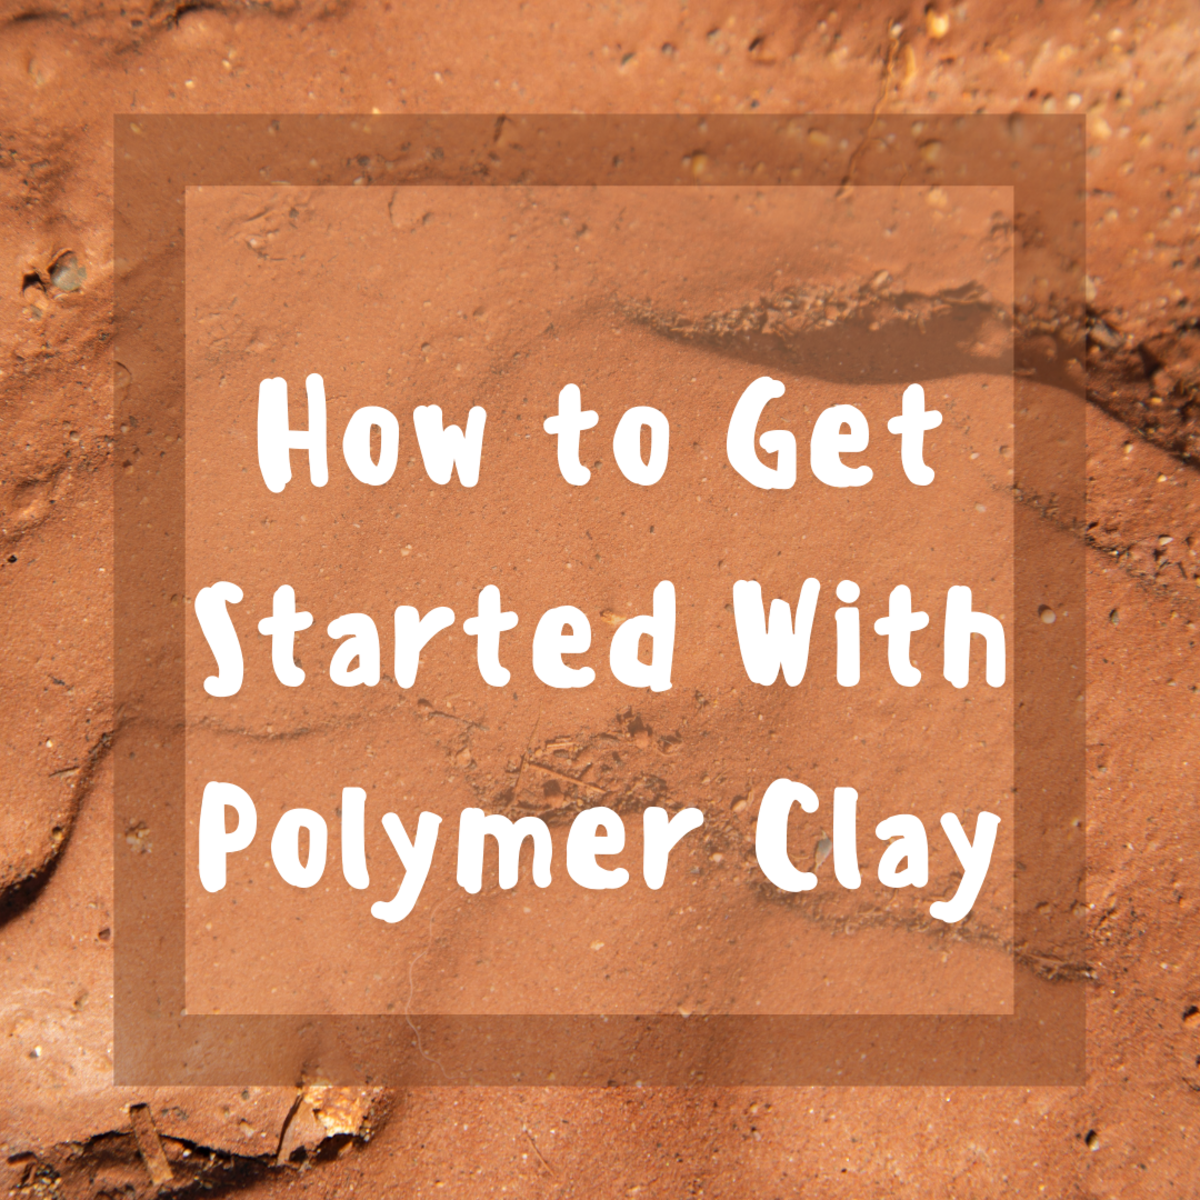 Learn about the basic supplies you'll need to get started using polymer clay